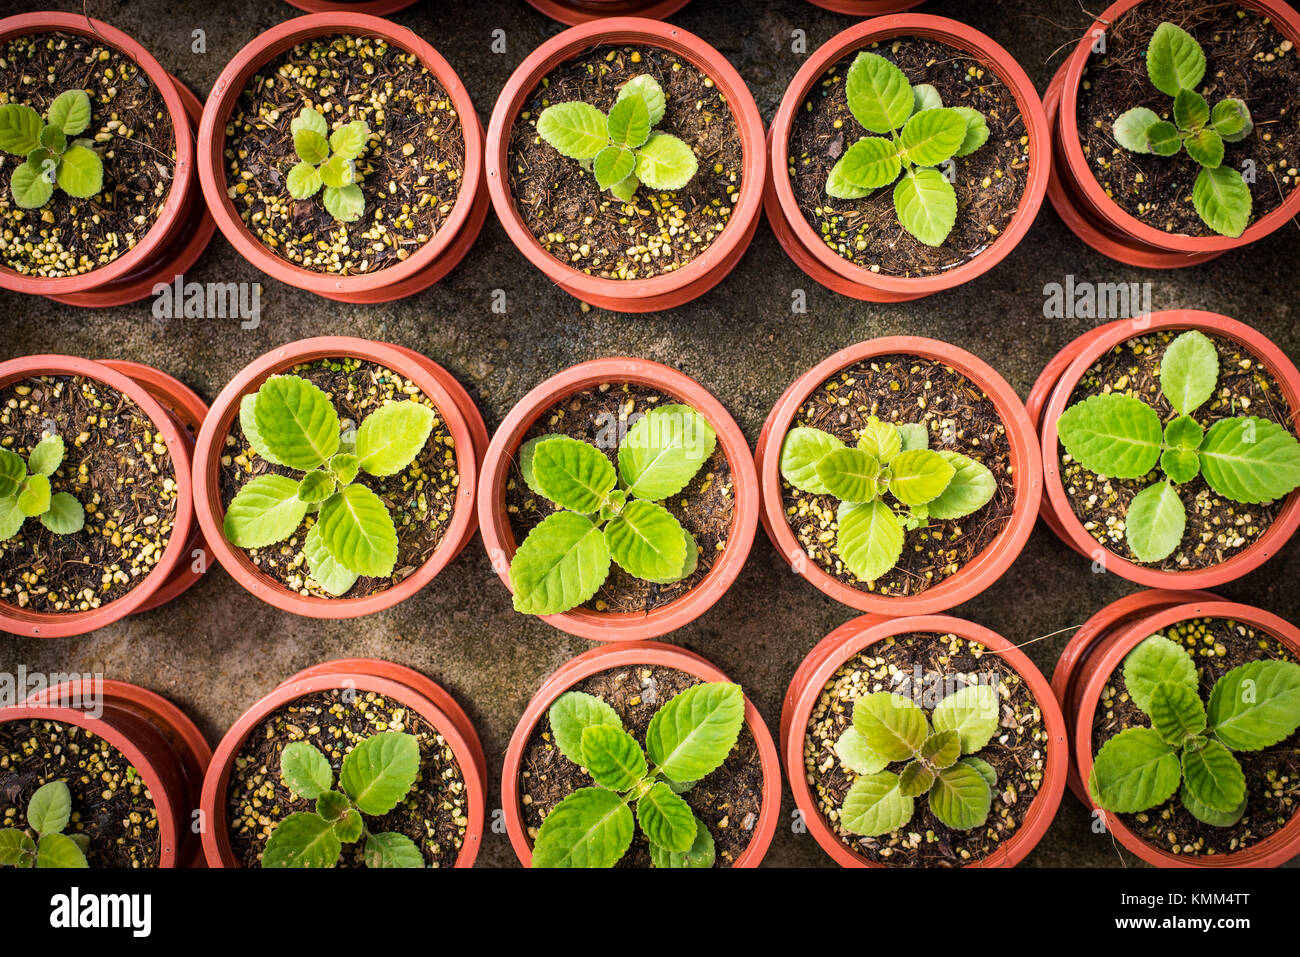 Potted seedlings growing in little brown pots arrange in top view for save the wolrd concept. - Stock Image